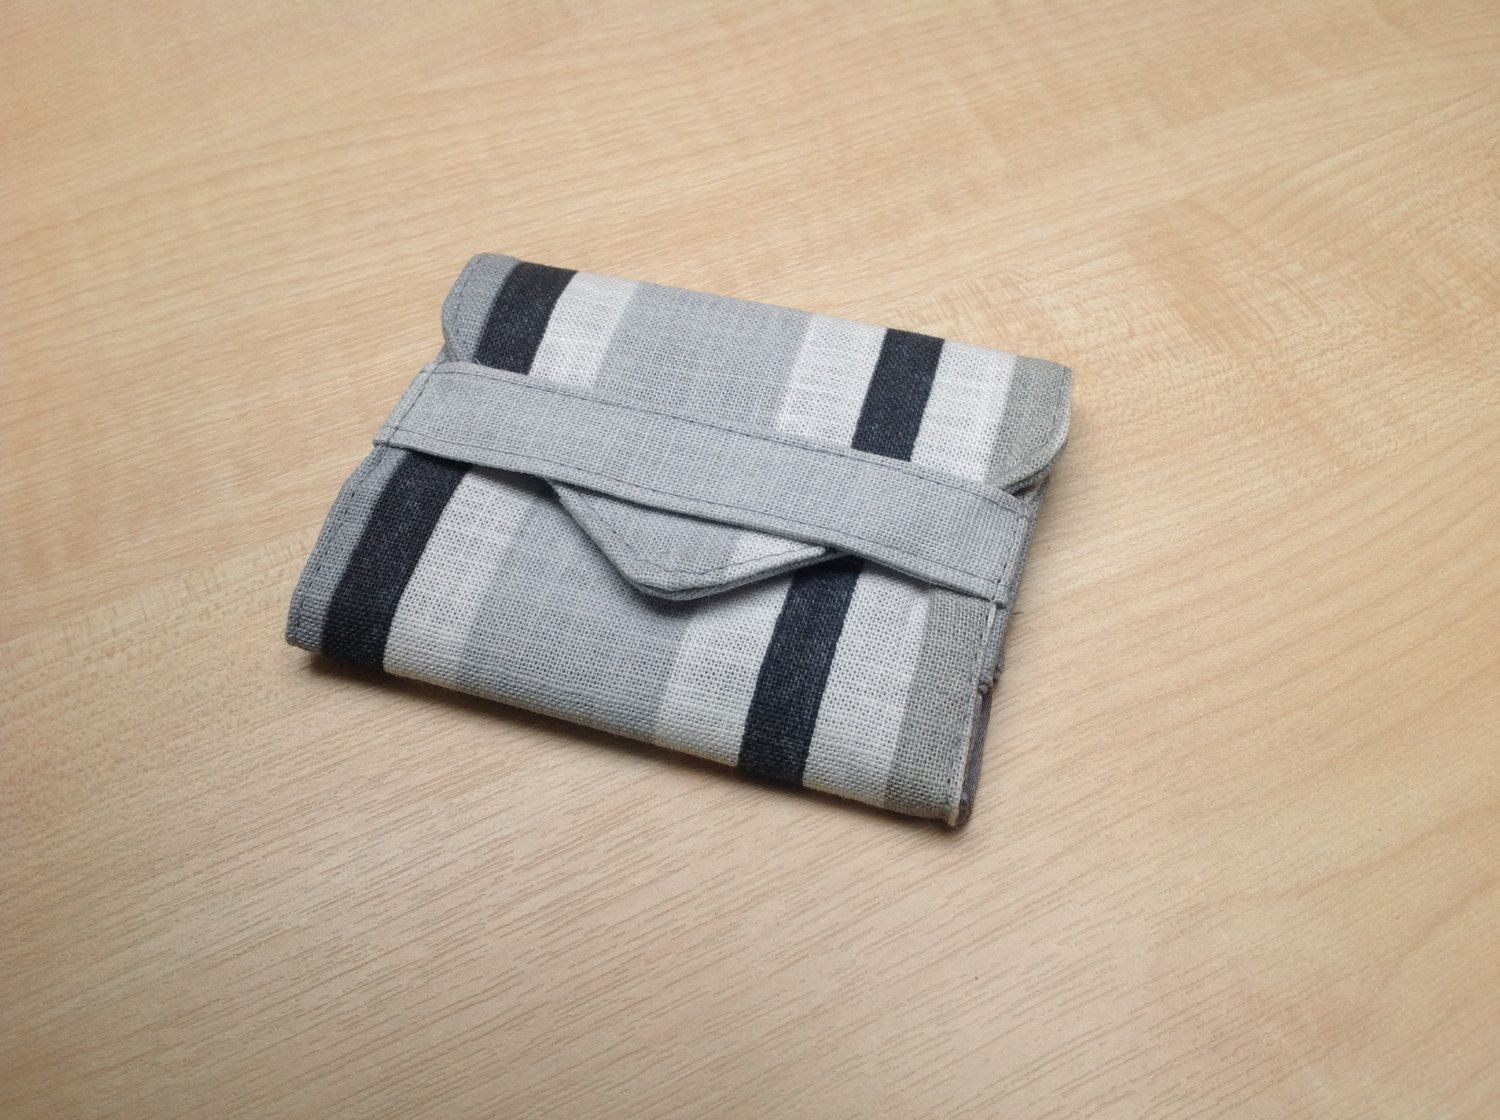 Fabric store card wallet,linen striped card holder,business card ...